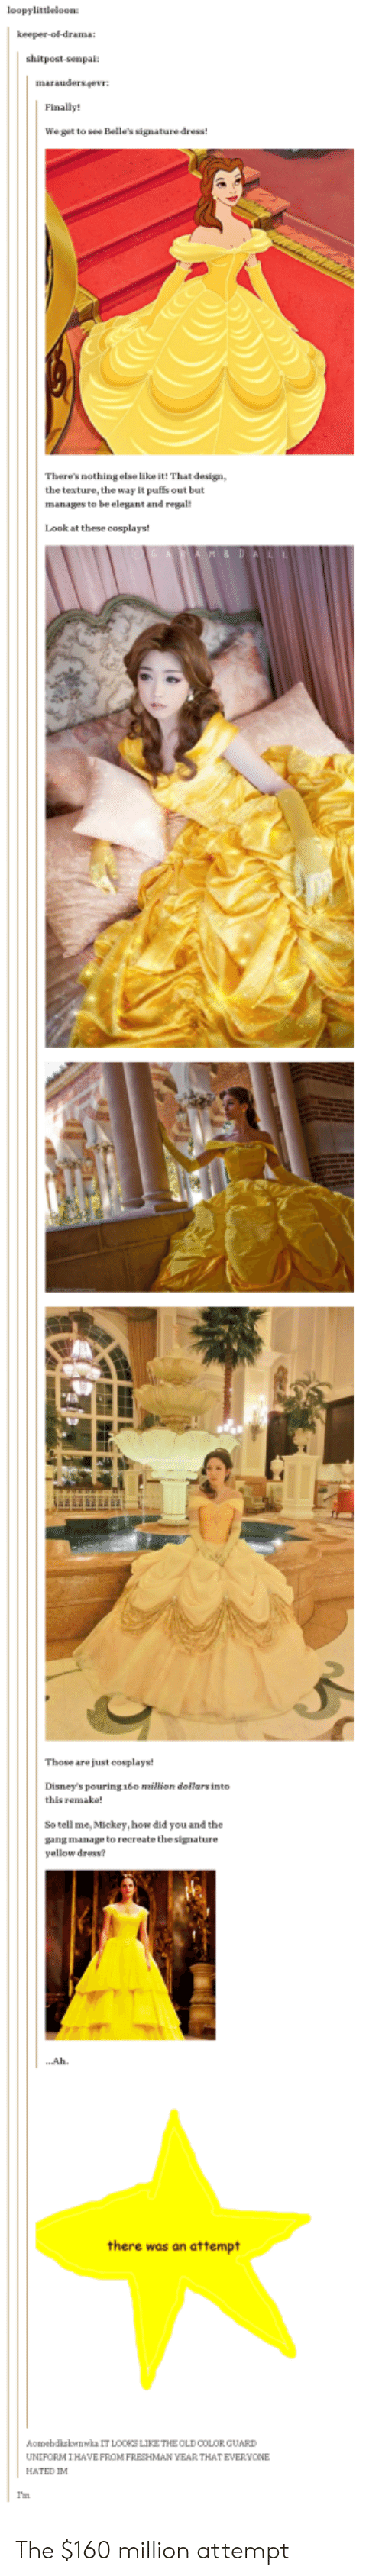 Color Guard: loopylittleloon  shitpost-senpai:  Finally!  We get to see Belle's signature dress!  Theres nothing else lake it!That design  the texture, the way It puffs out but  manages to be elegant and regal  Look at these cosplays  Those are just eosplays  Disney's pouring 16o milion doilars into  this remake  So tell me, Mickey, how did you and the  gang manage to recreate the signature  yellow dress?  ..Ah  there was an attempt  homebdkzkwnwka IT LOORS LIKE THEOLD COLOR GUARD  UNIFORMIHAVE FROM FRESHMAN YEAR THAT EVERYONE  HATED IM  Ia The $160 million attempt